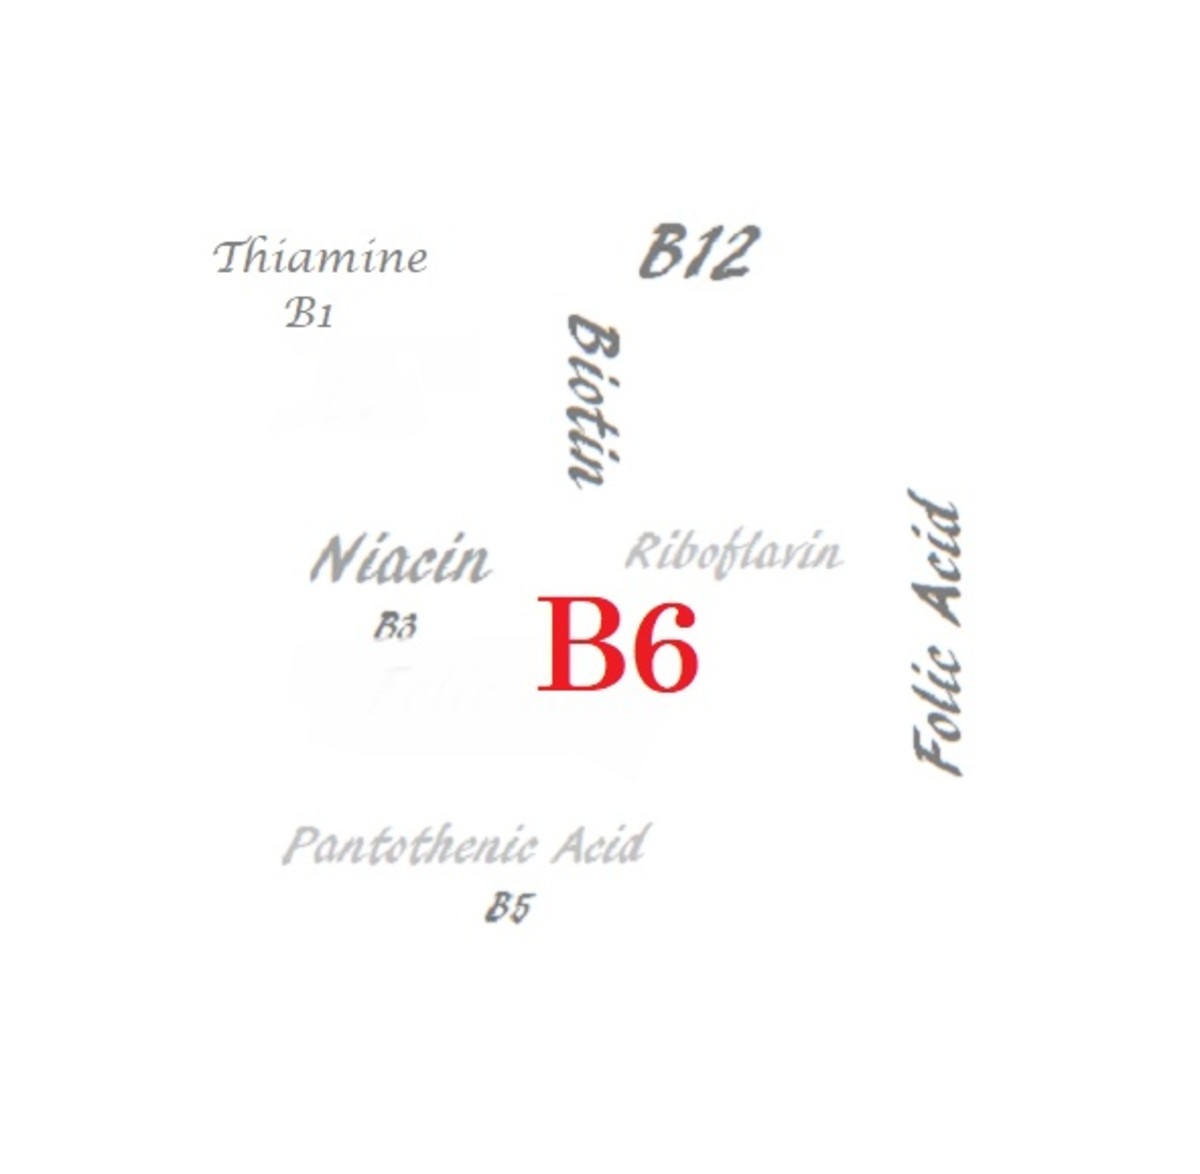 My Experience Choosing a Vitamin B6 Supplement